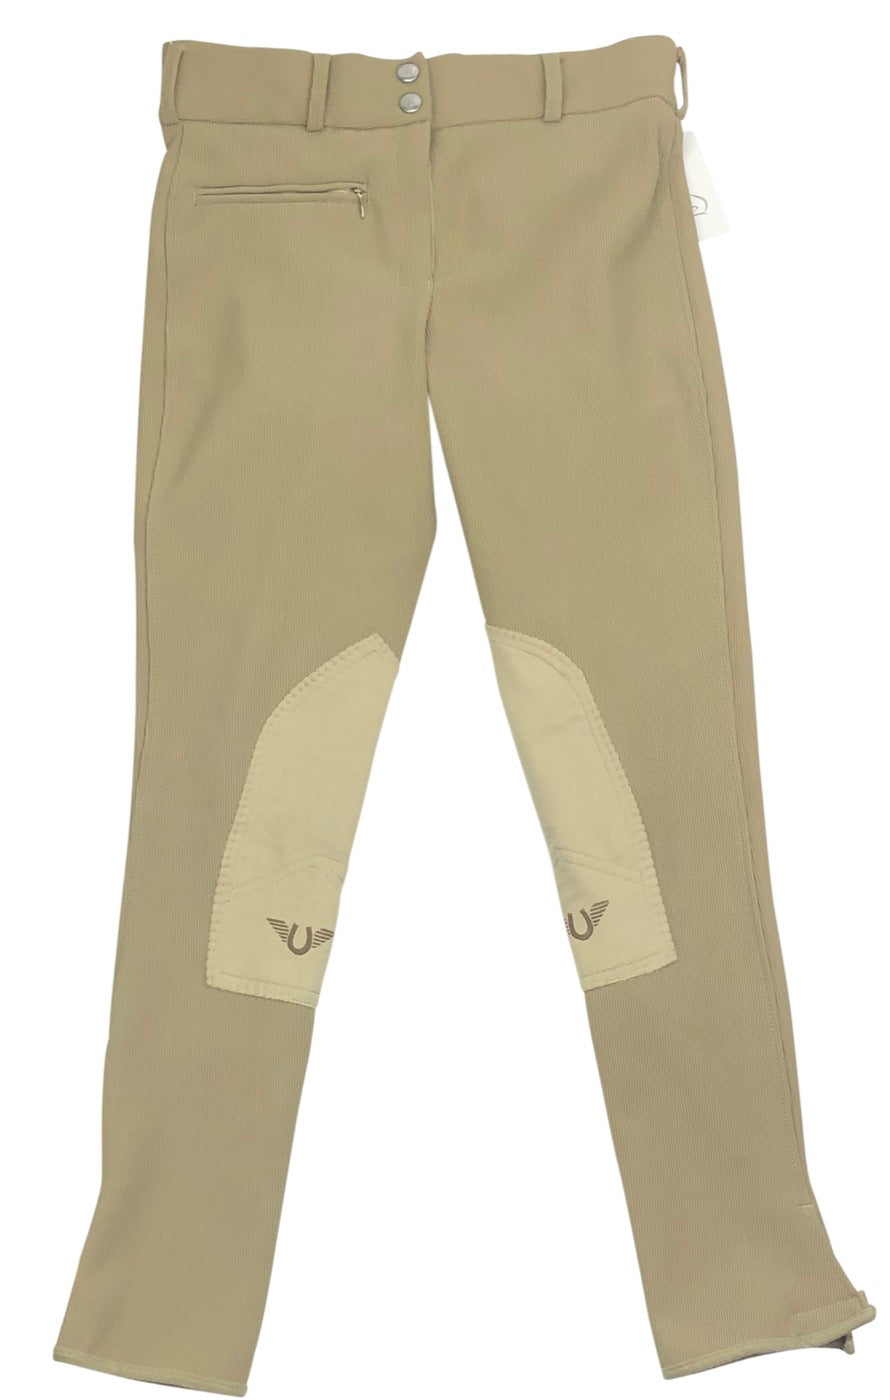 TuffRider Ribb Front Zip Knee Patch Breeches in Tan